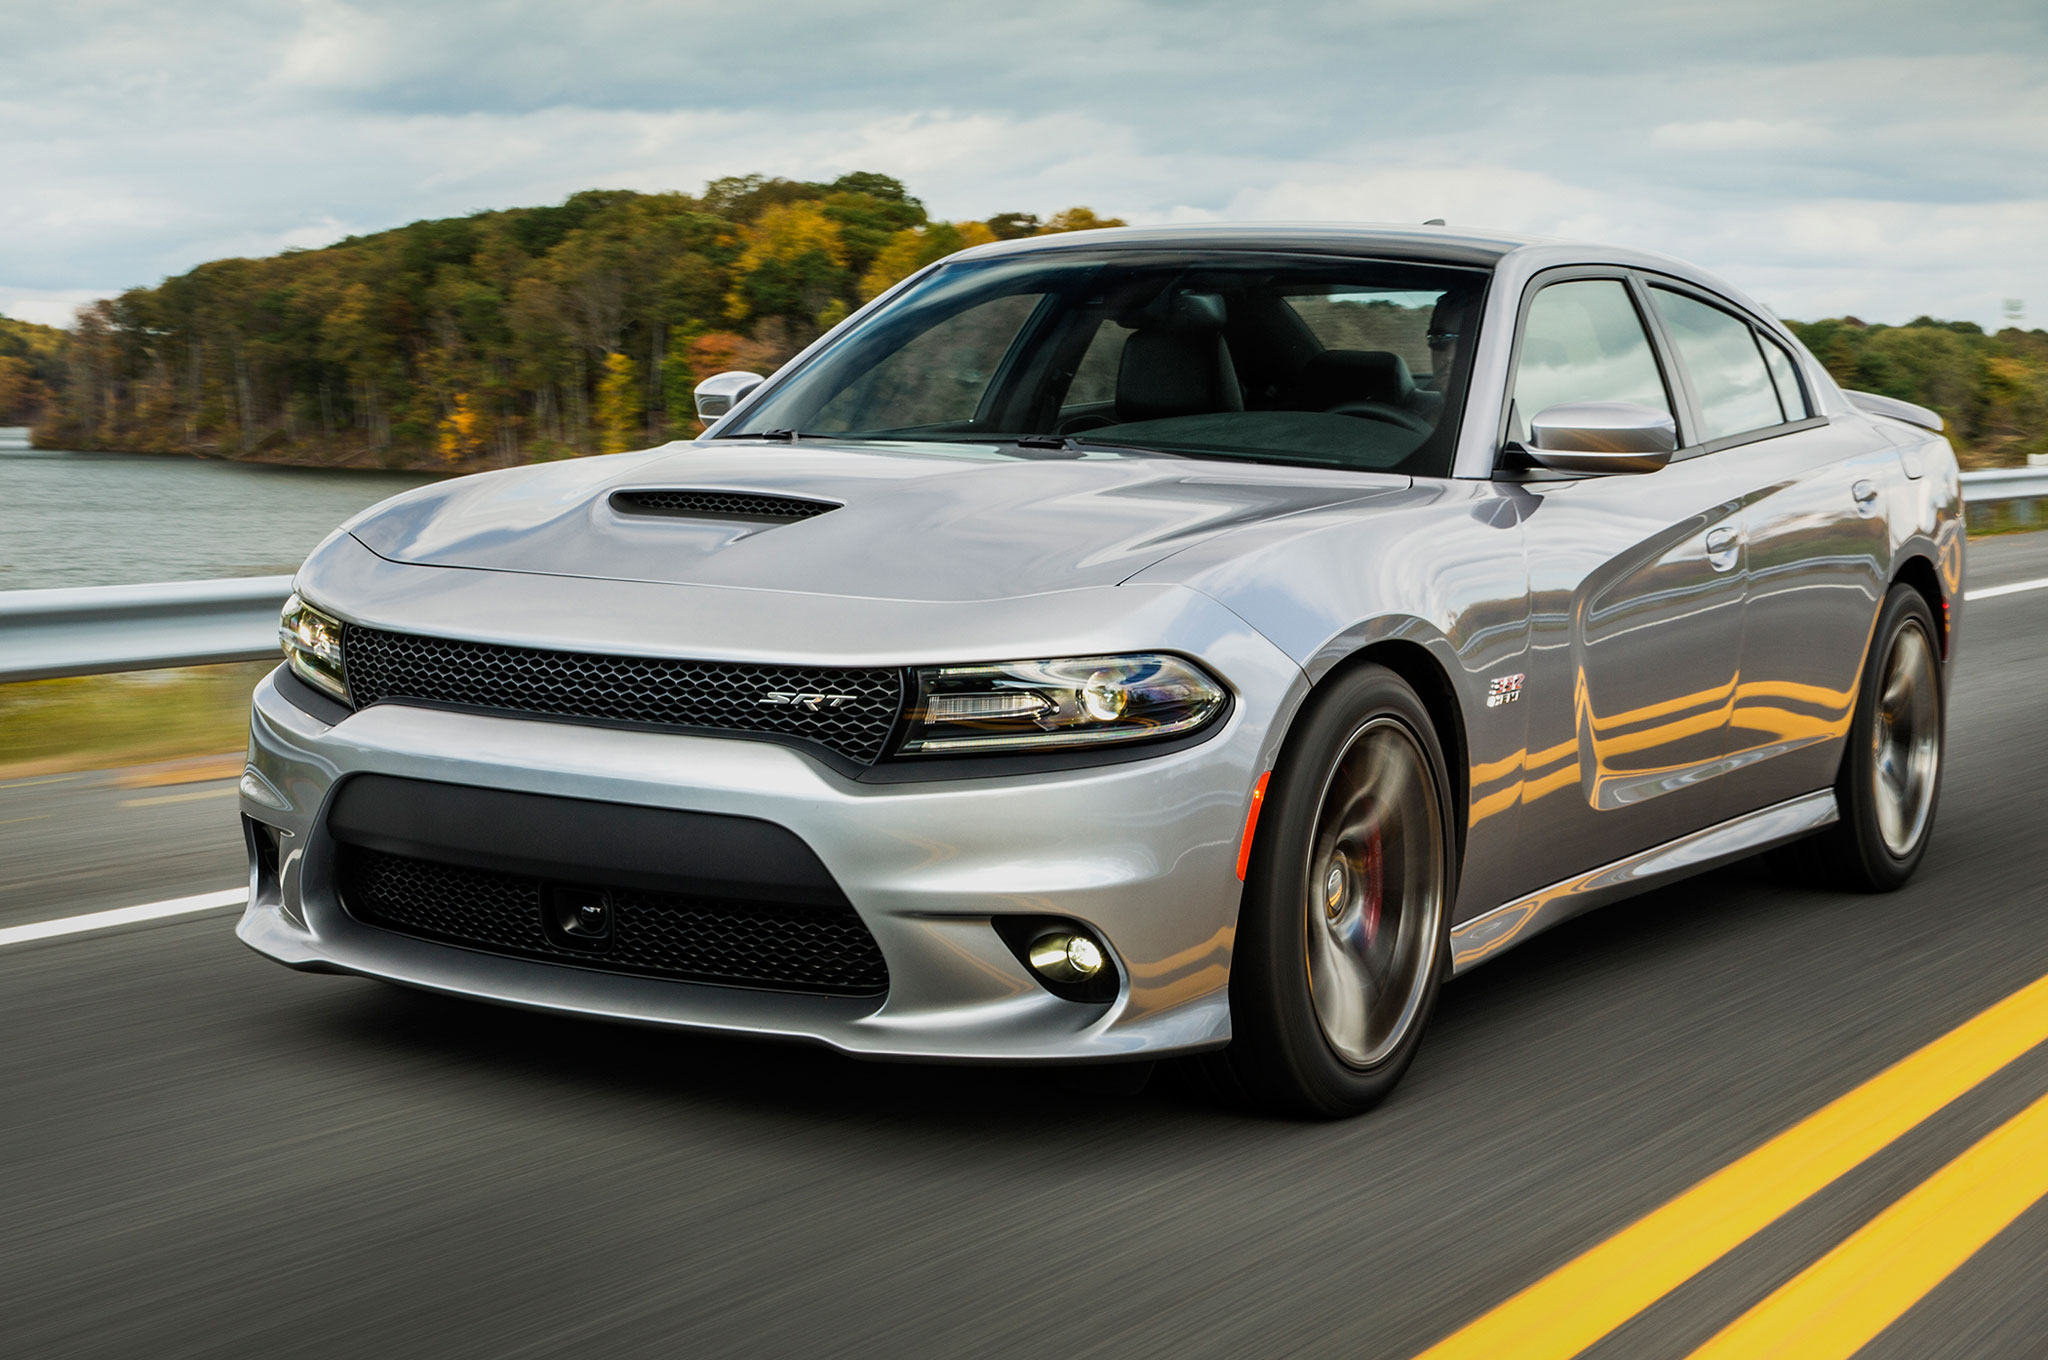 Watch The 852 Hp Hennessey Dodge Charger Hellcat Hit The Dyno